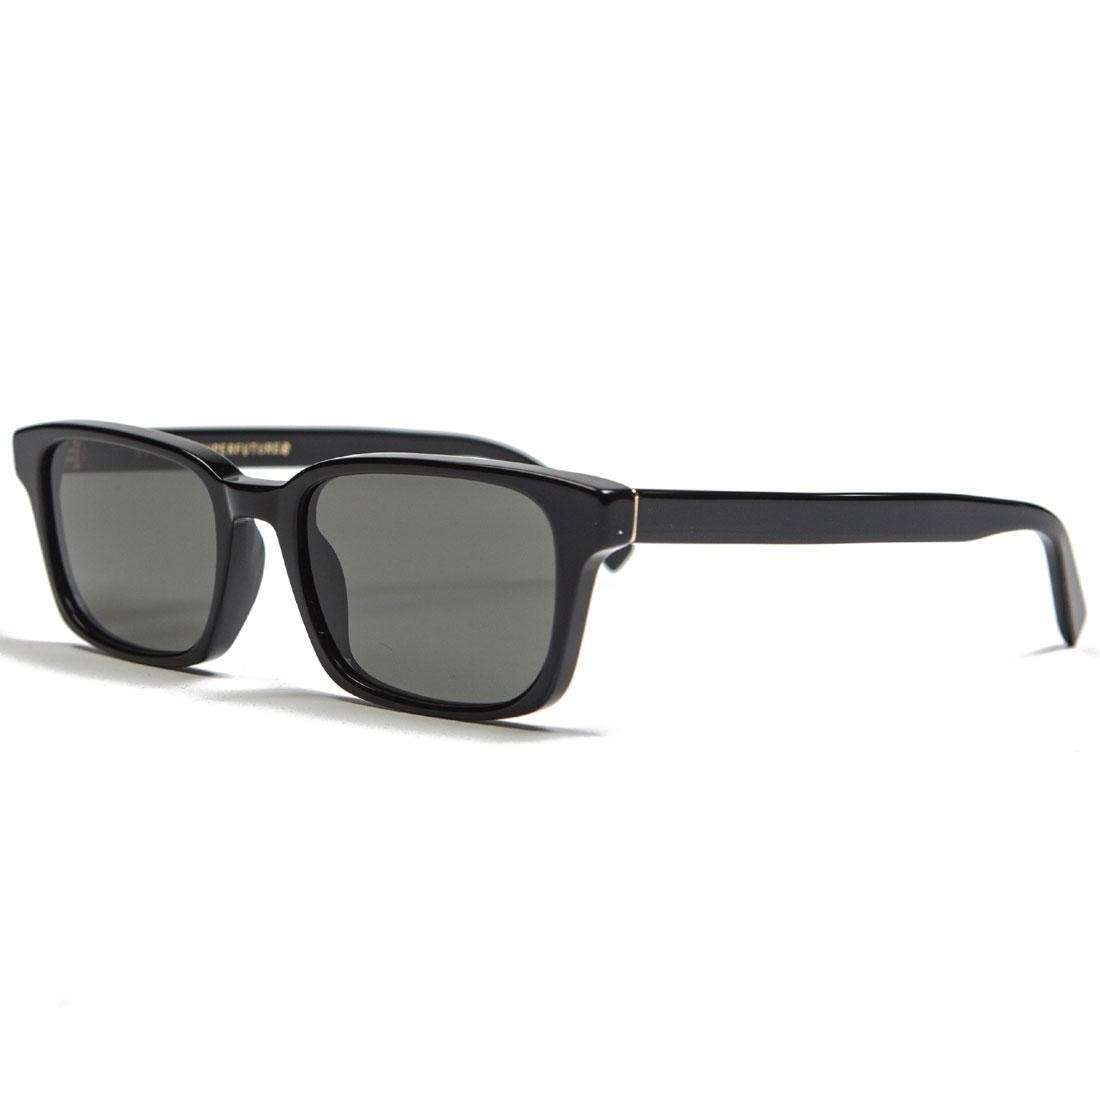 Super Sunglasses Regola Sunglasses (black)